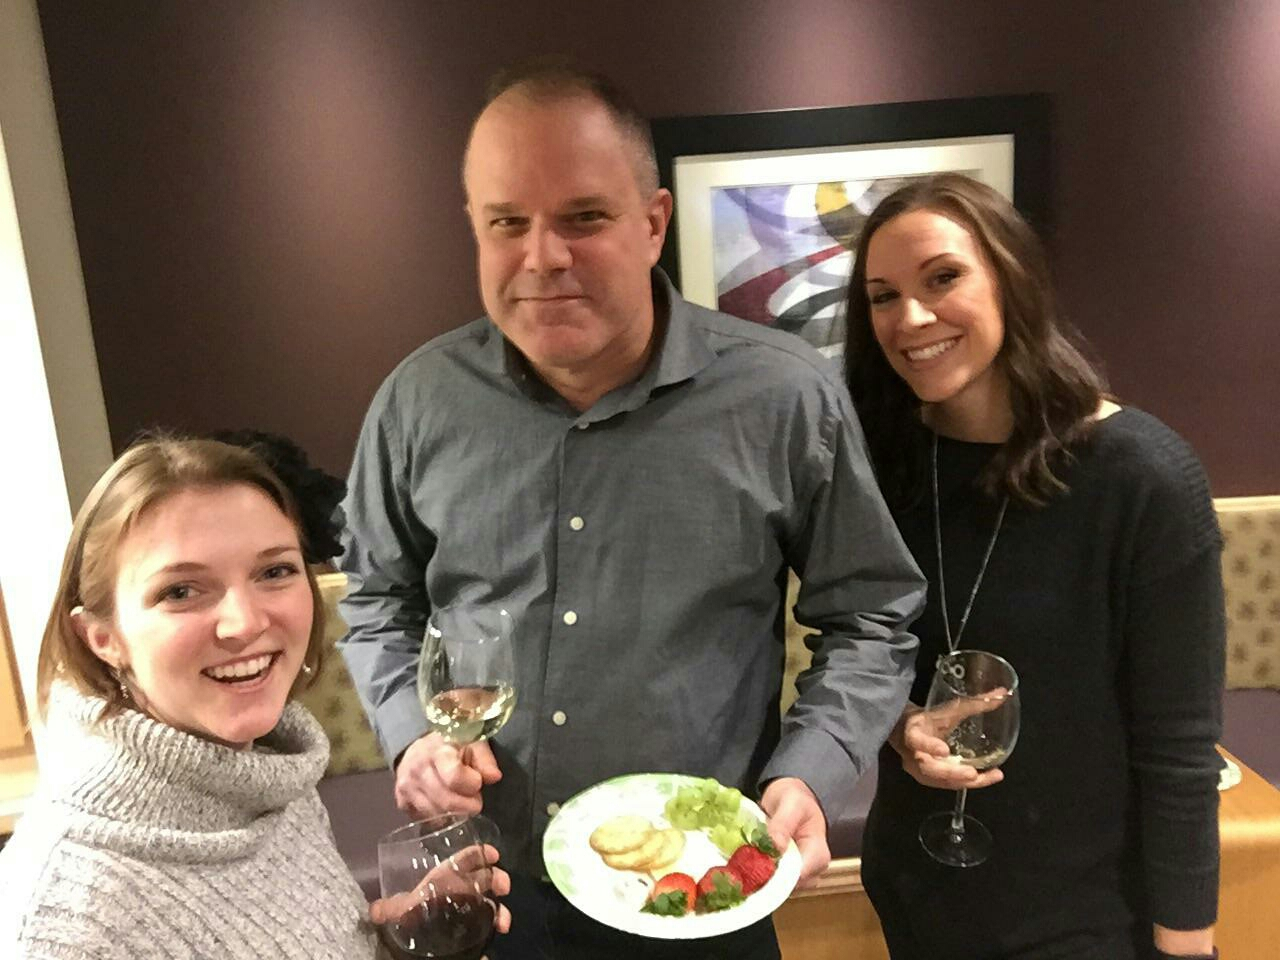 Arlington, VA - Enjoying our monthly wine happy hour at the Ballston Center office this afternoon!